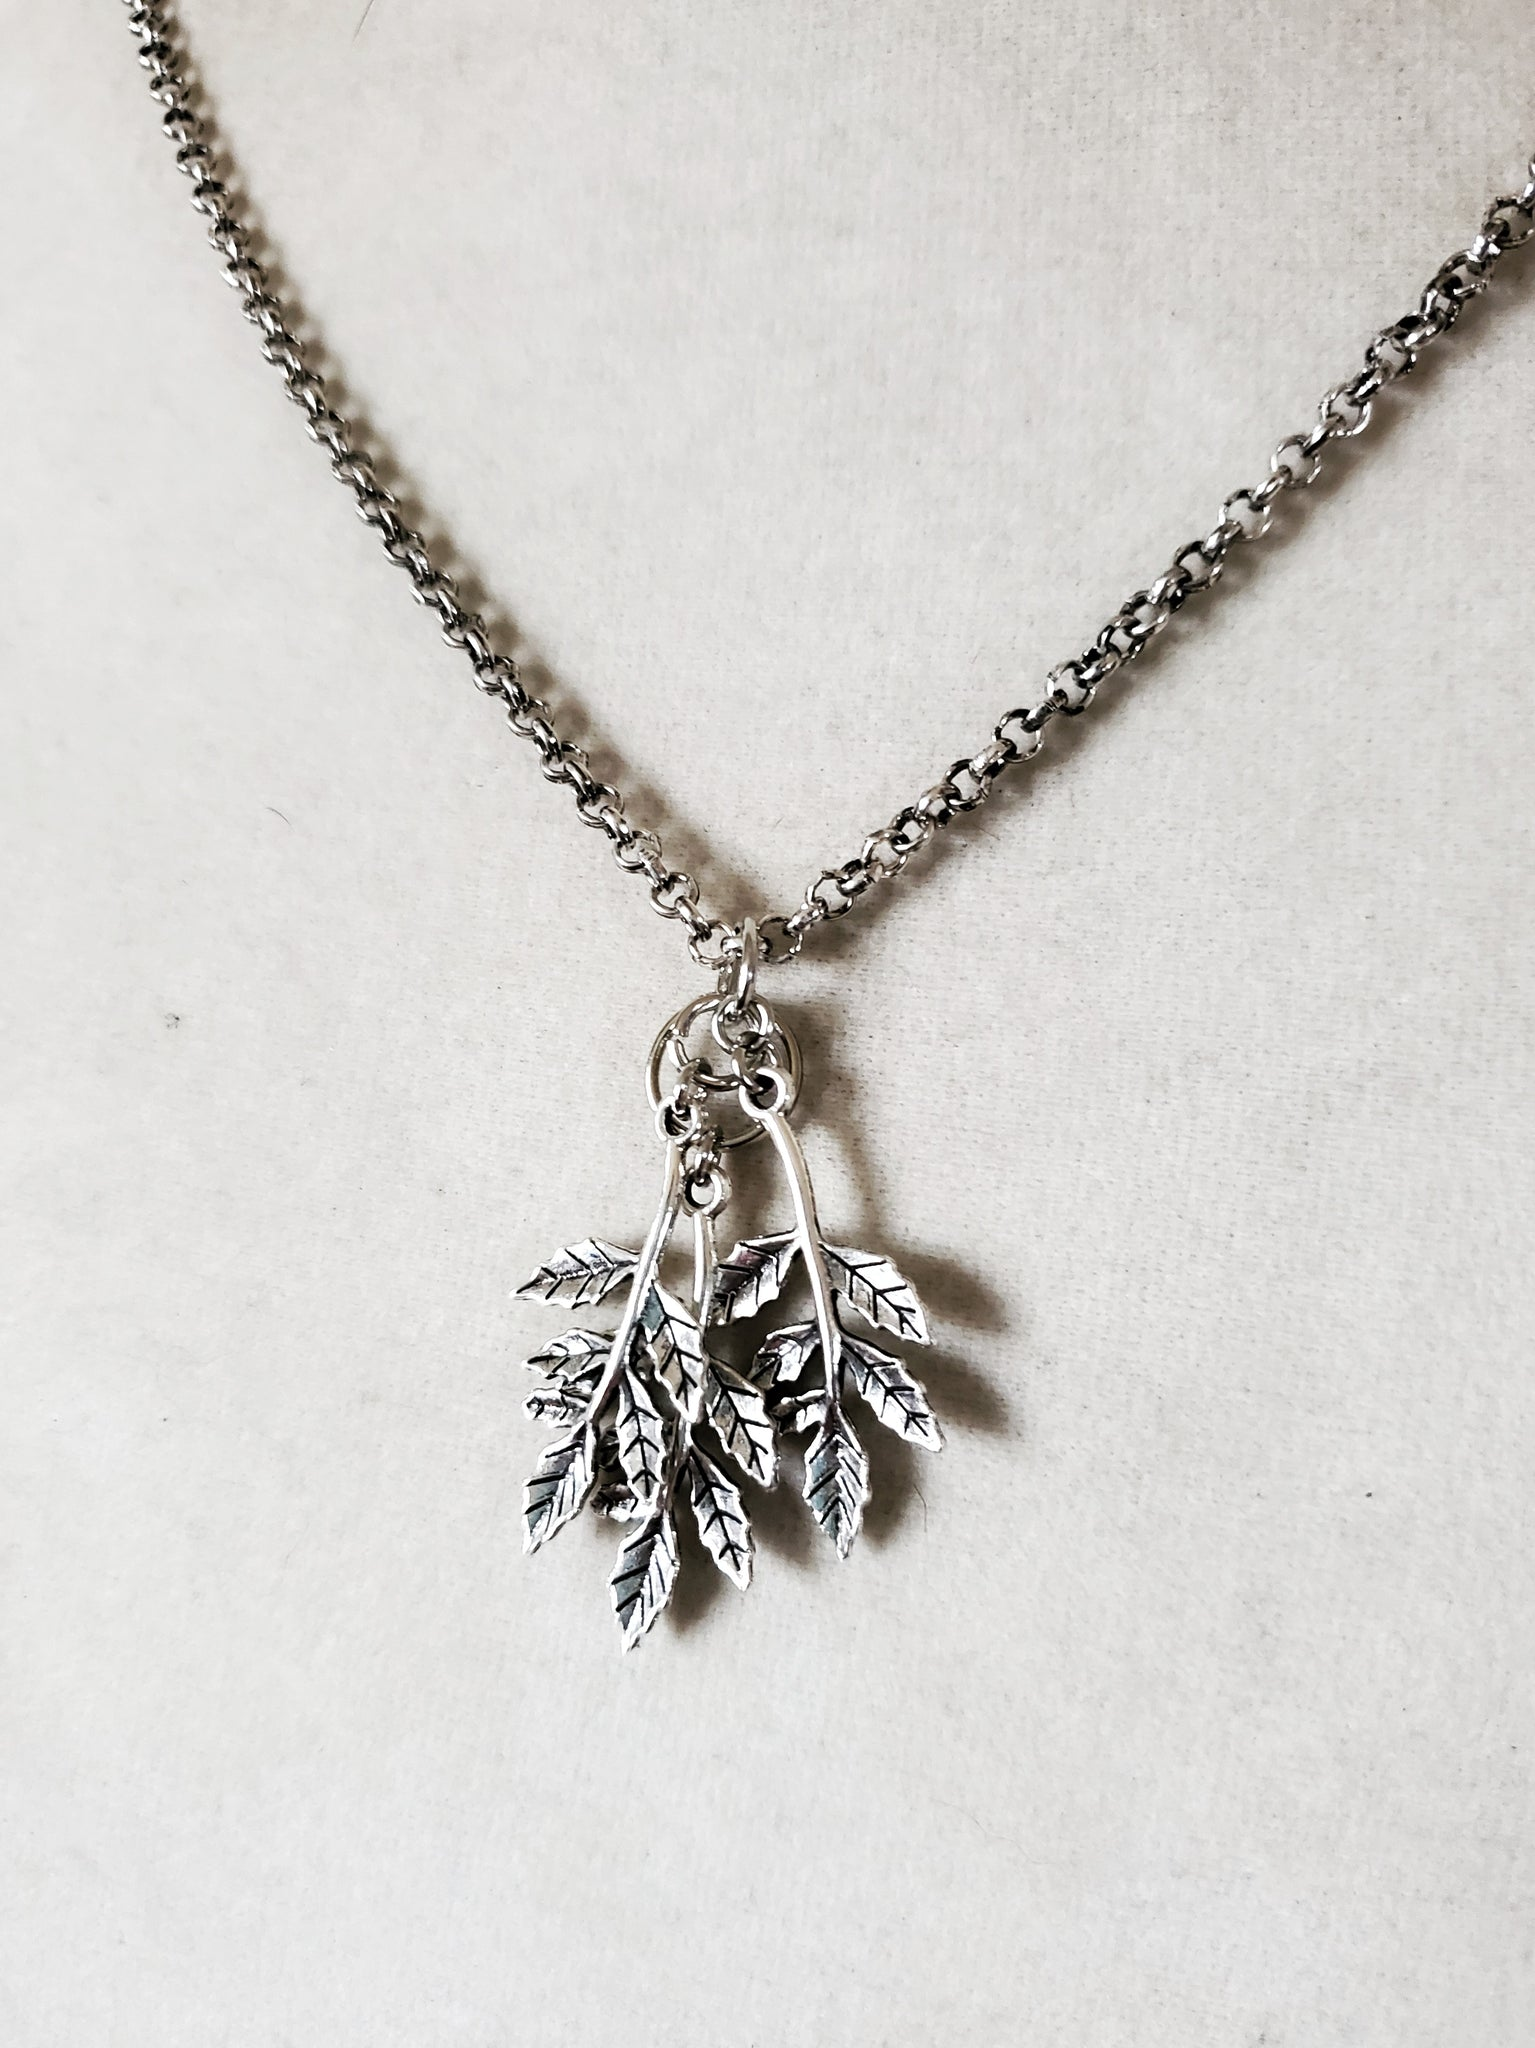 Falling Leaves Necklace Fall Jewelry